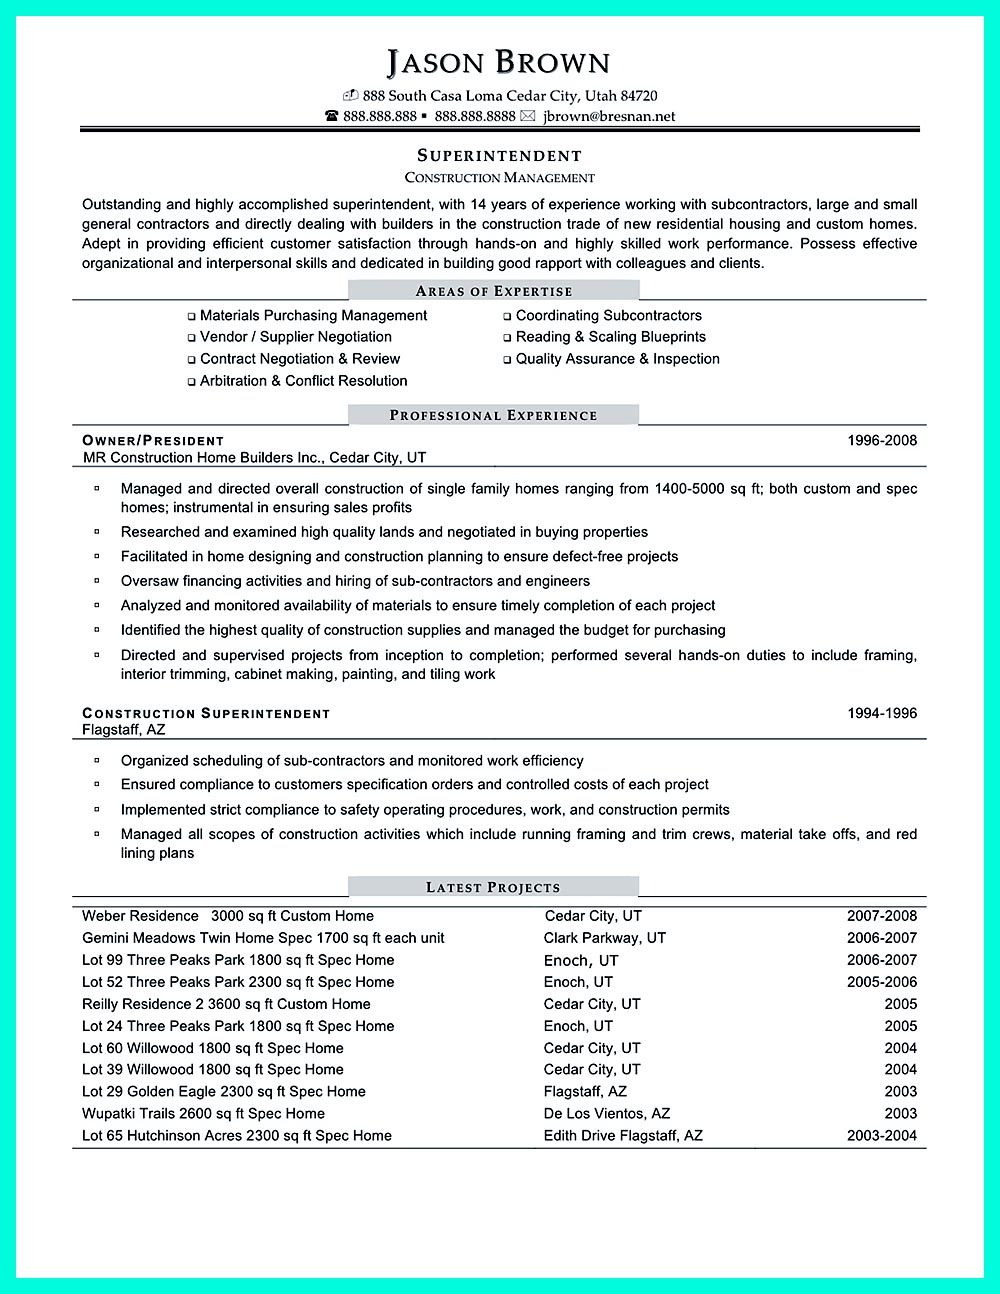 Resume For Project Manager Construction Project Manager Resume For Experienced One Must Be